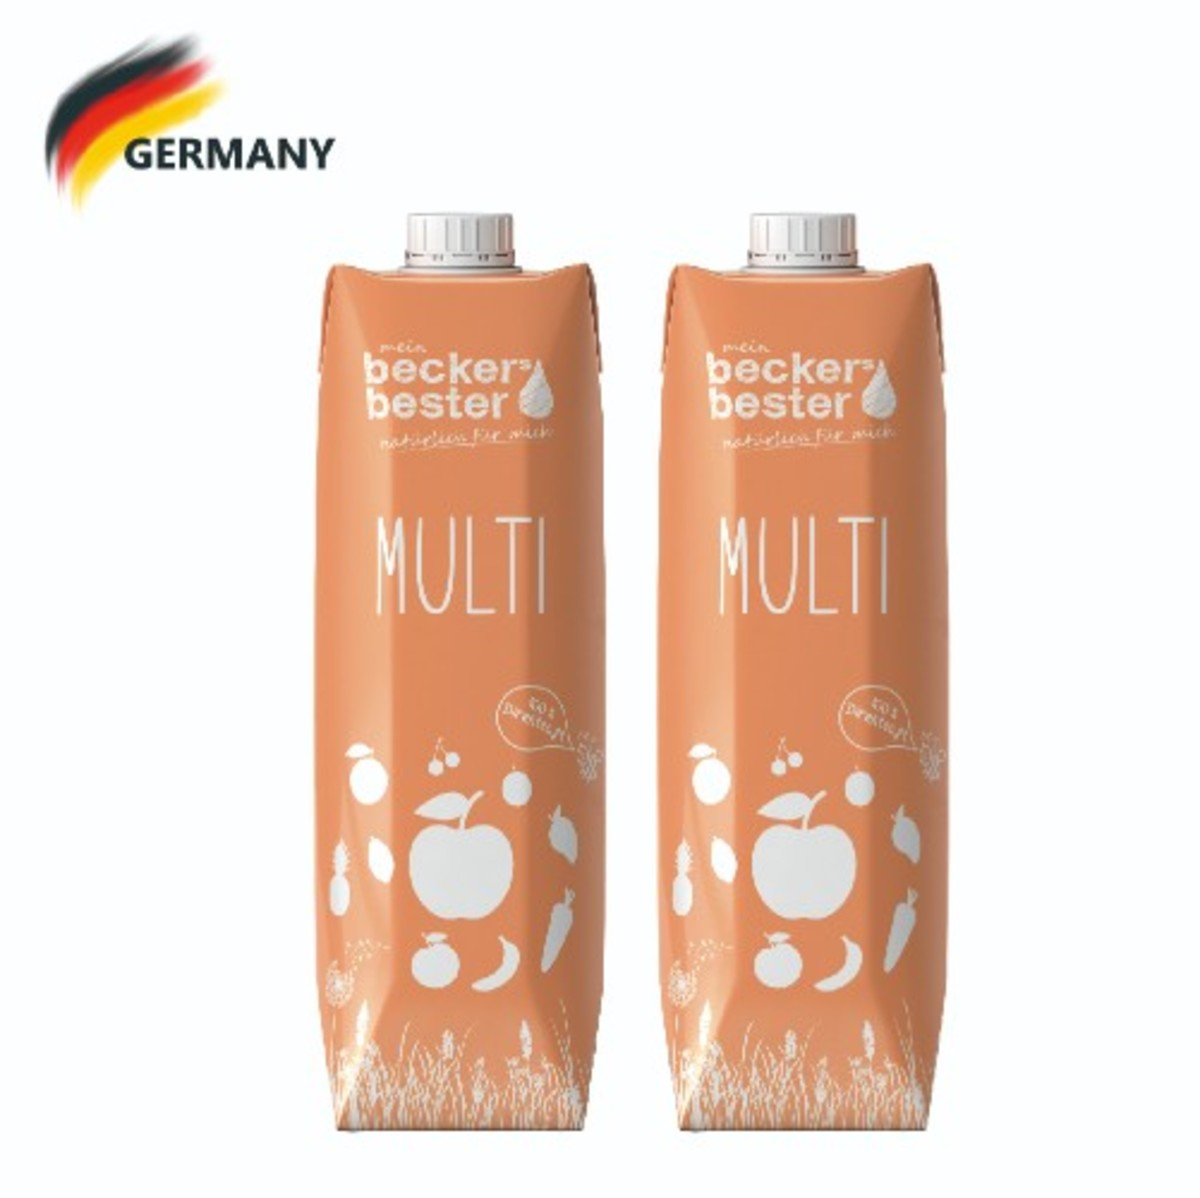 100% Direct Pressed Multi Juice (Not-From-Concentrate) 1L x2